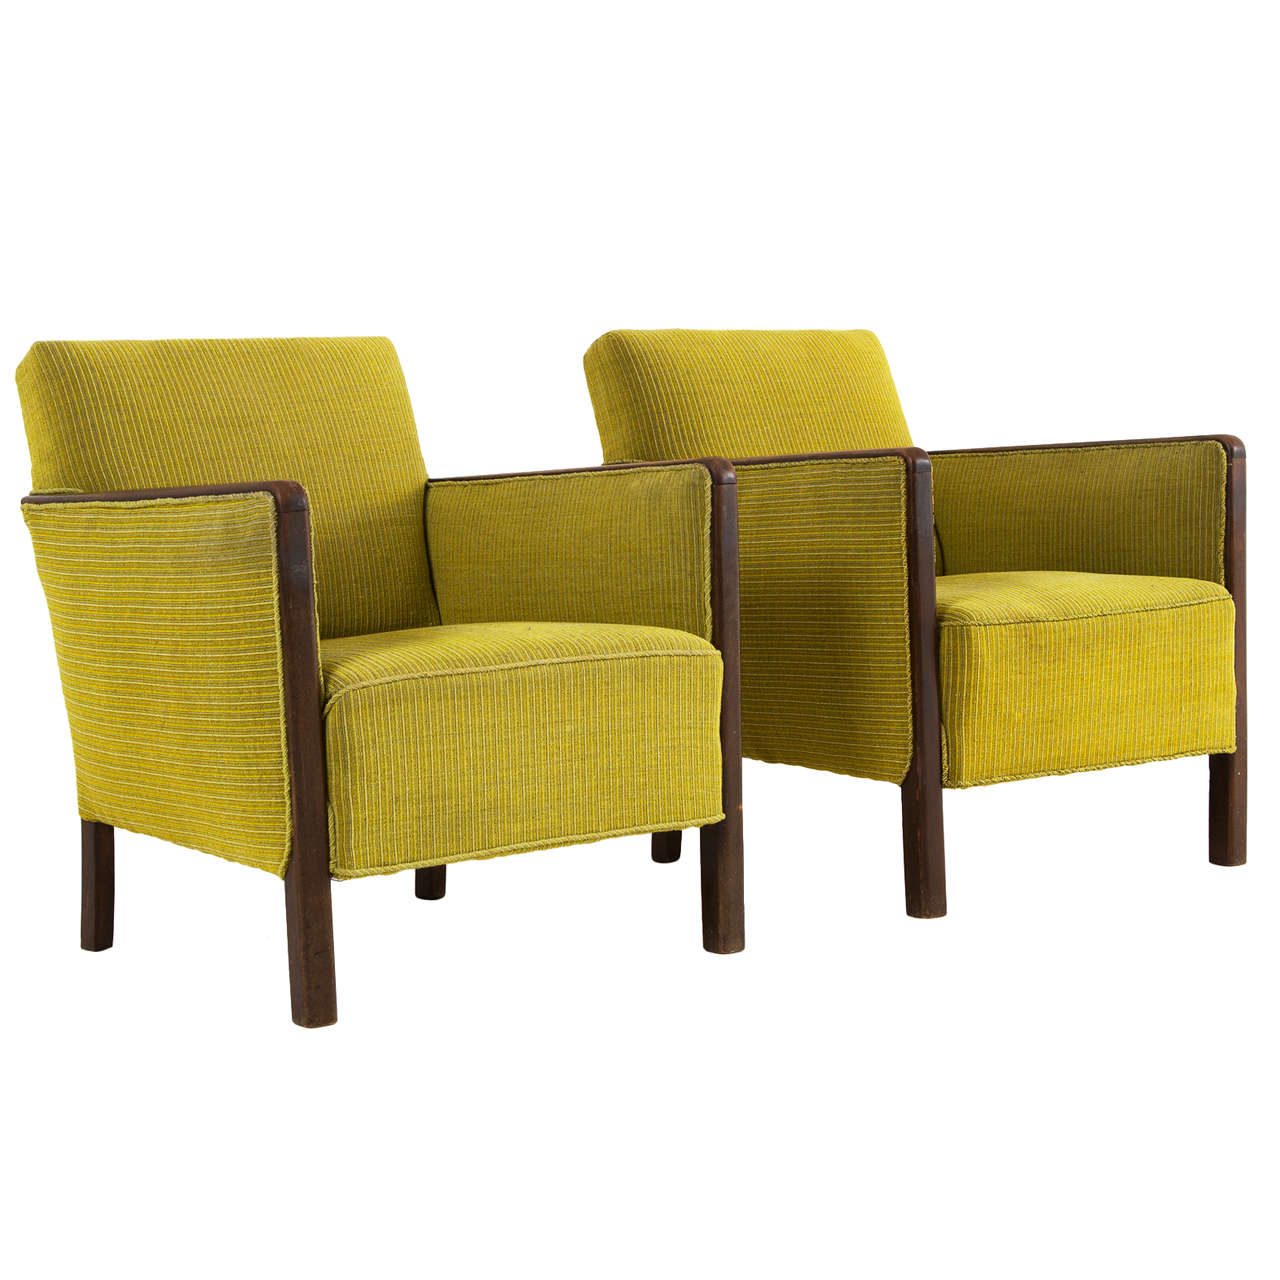 Pair of Modern Danish Easy Chairs 1950s at 1stdibs